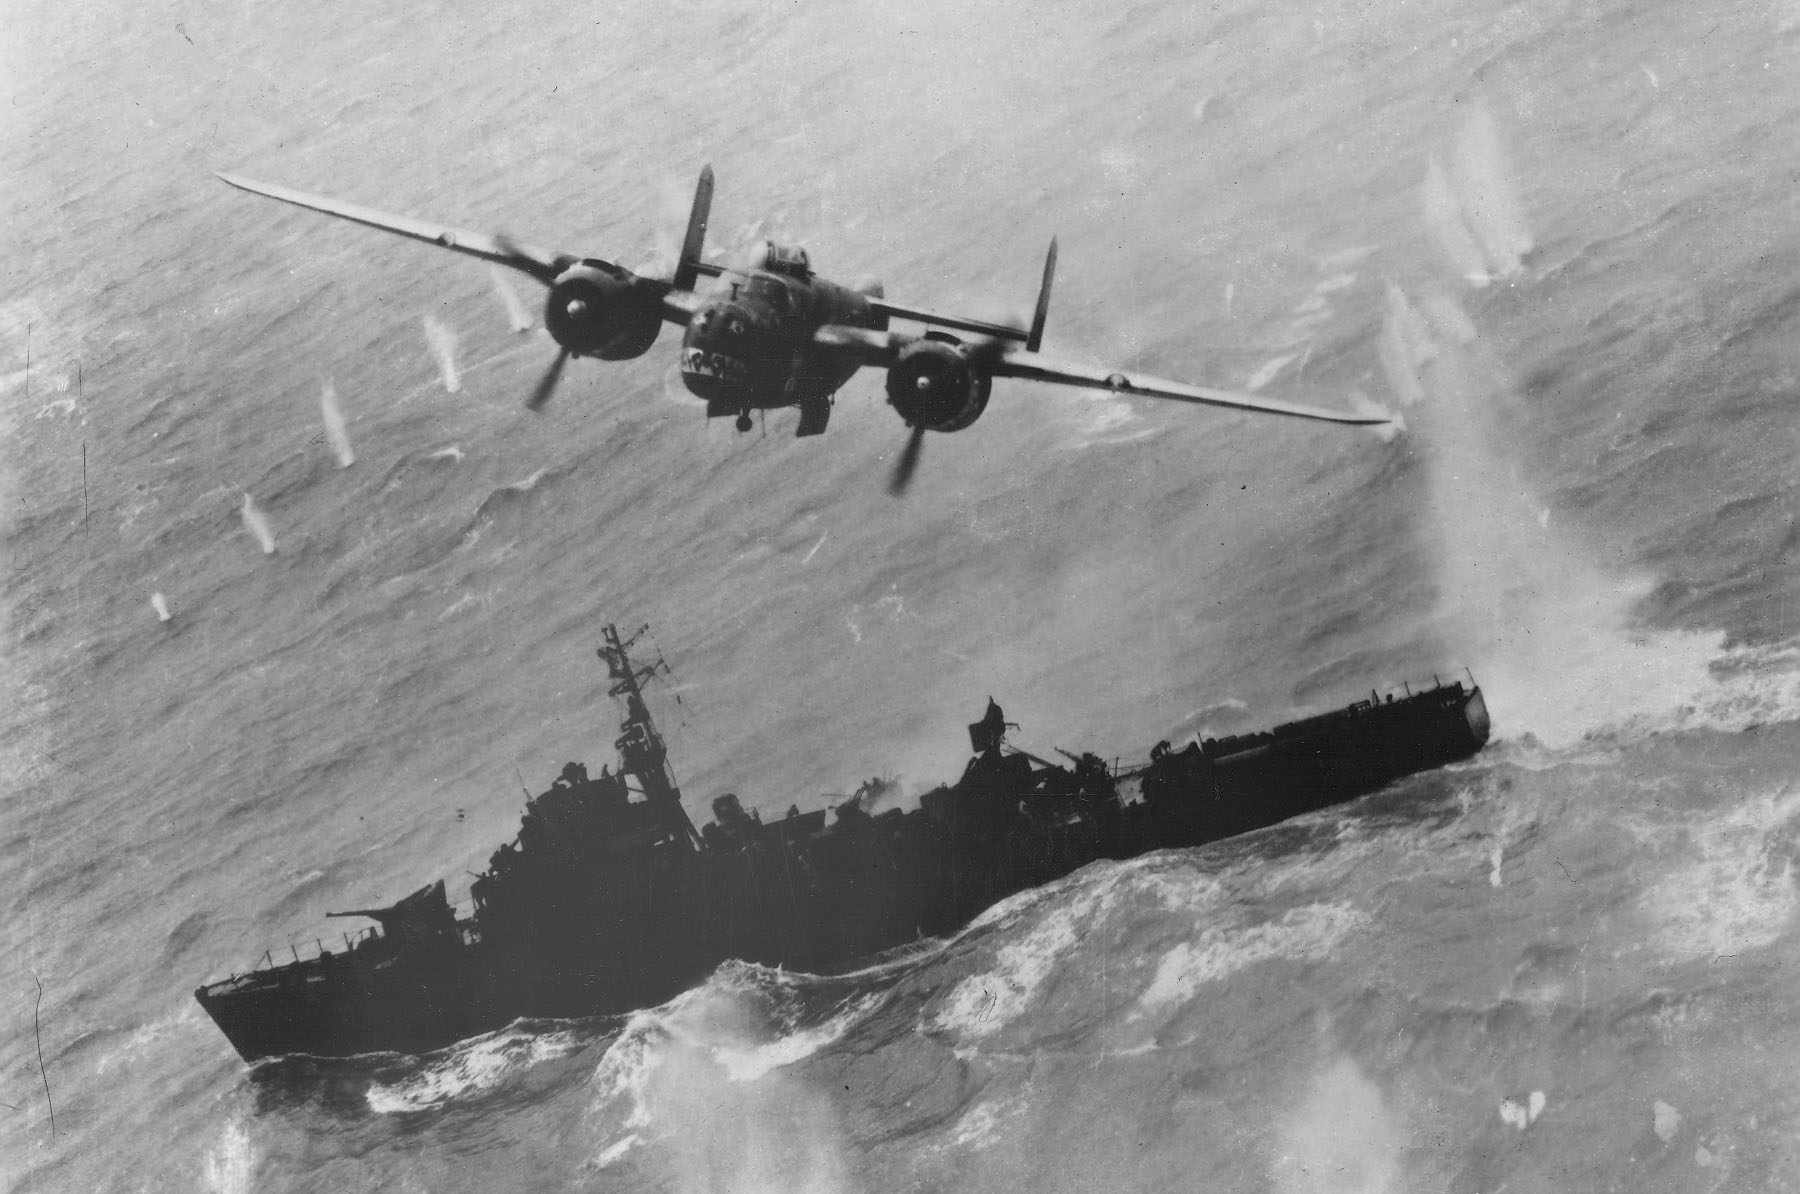 B-25 Mitchell flying over a Japanese warship.